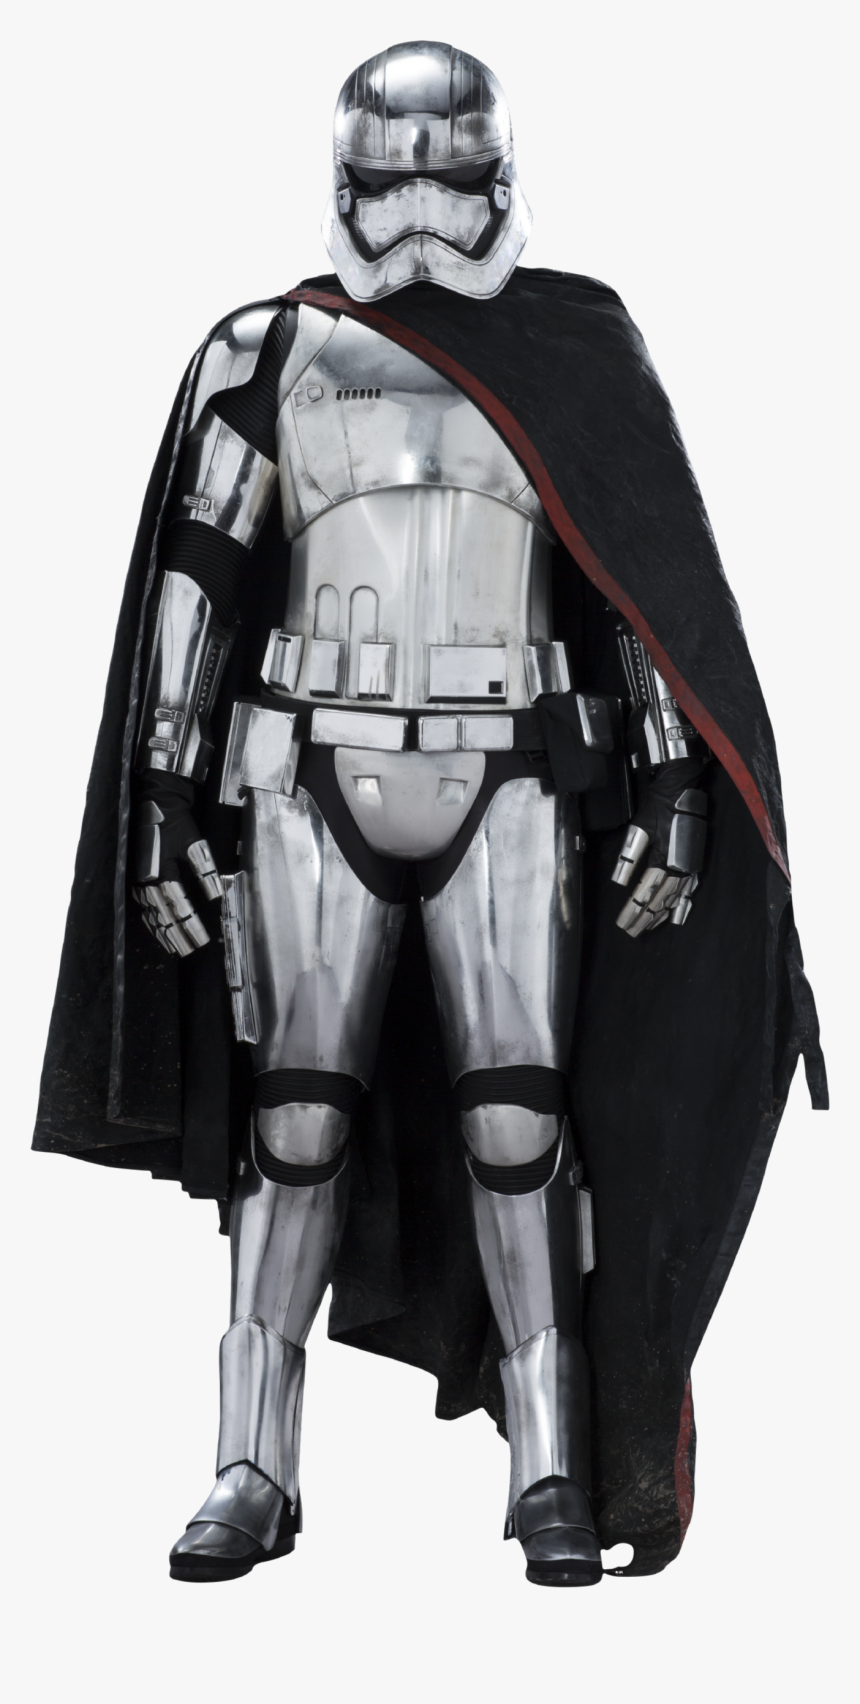 Captain Phasma Star Wars Ep7 The Force Awakens Characters - Star Wars Characters Captain Phasma, HD Png Download, Free Download